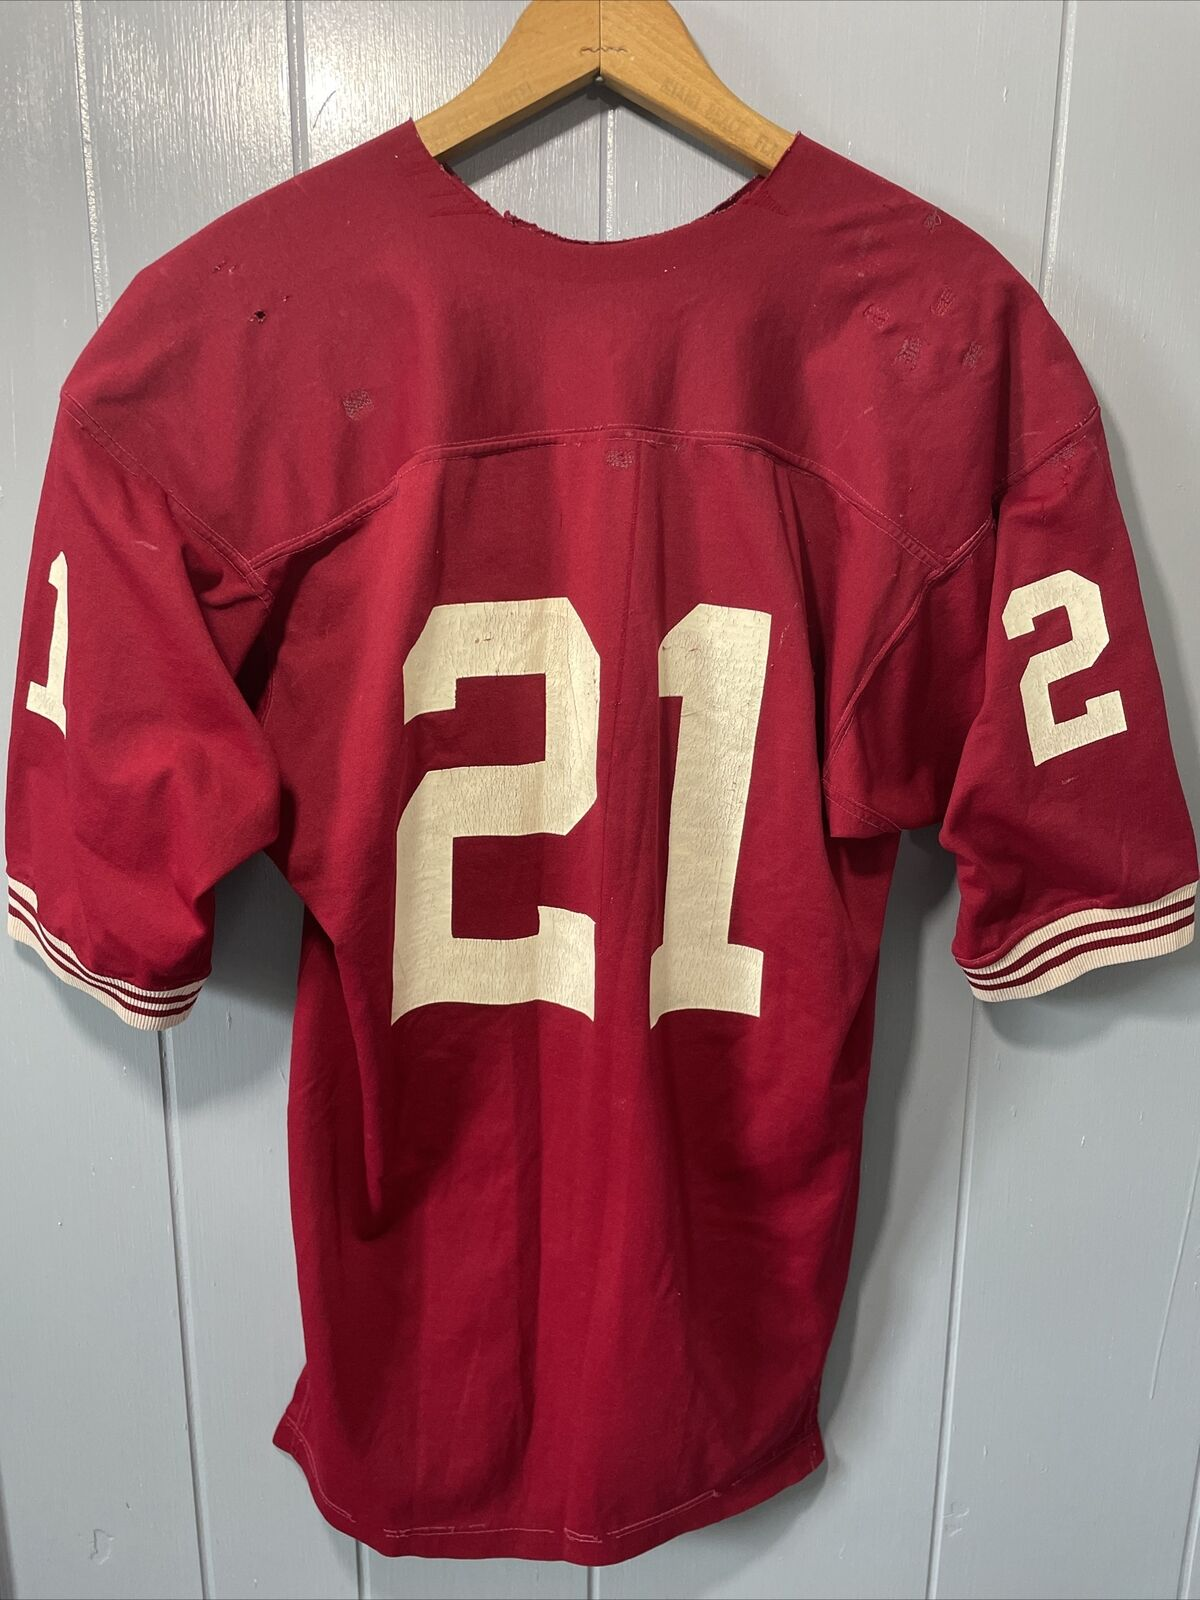 VTG 70's Russell Athletic Red Football Jersey #21… - image 8